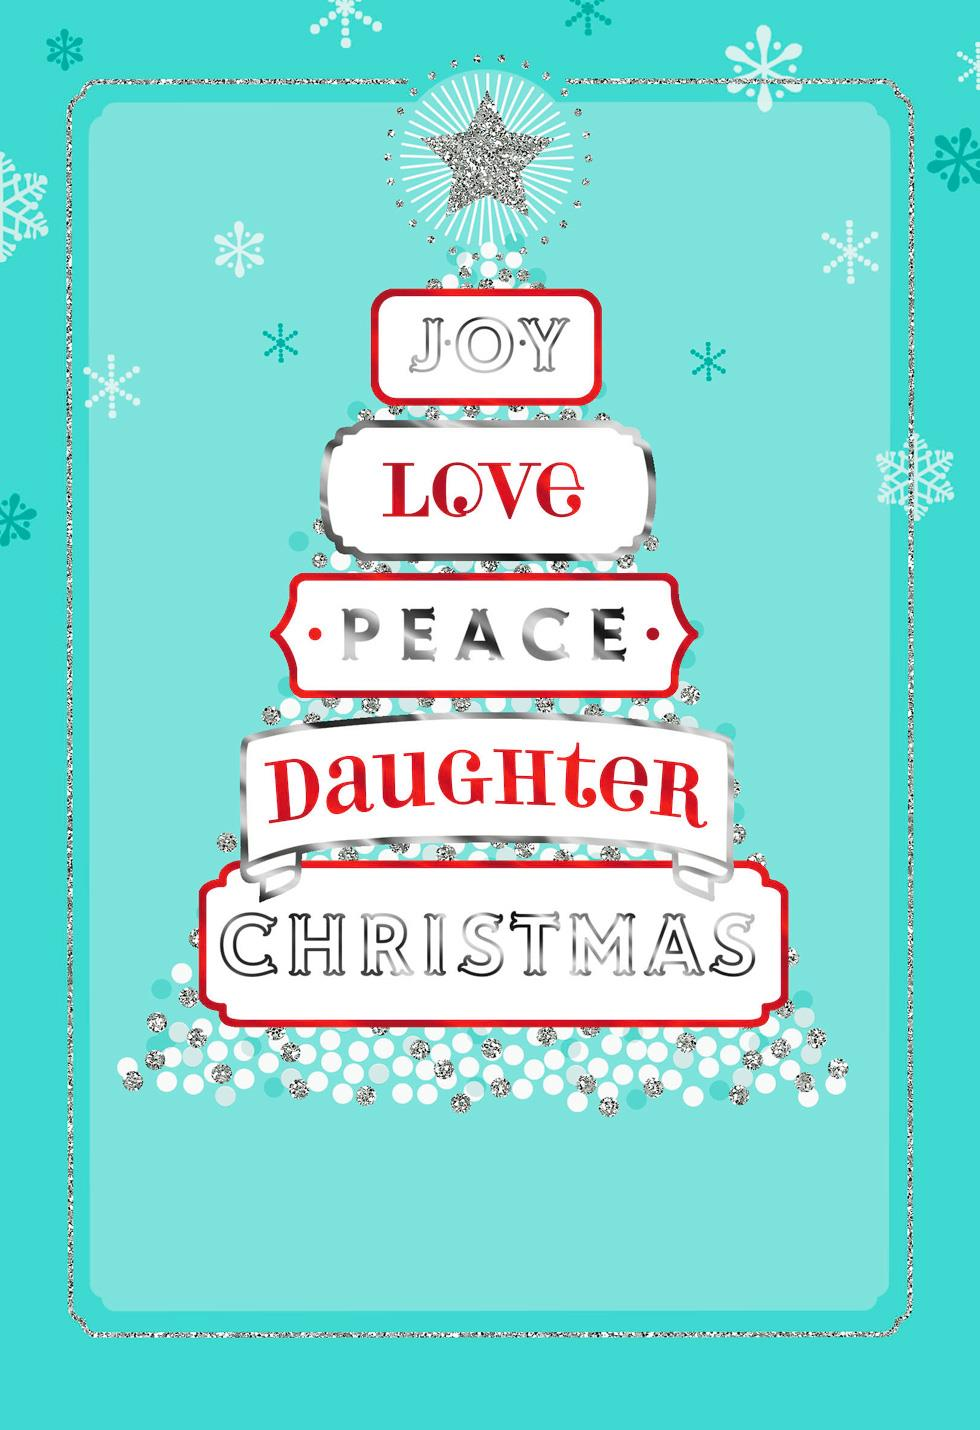 Joy Love Peace Christmas Card for Daughter  Greeting Cards  Hallmark